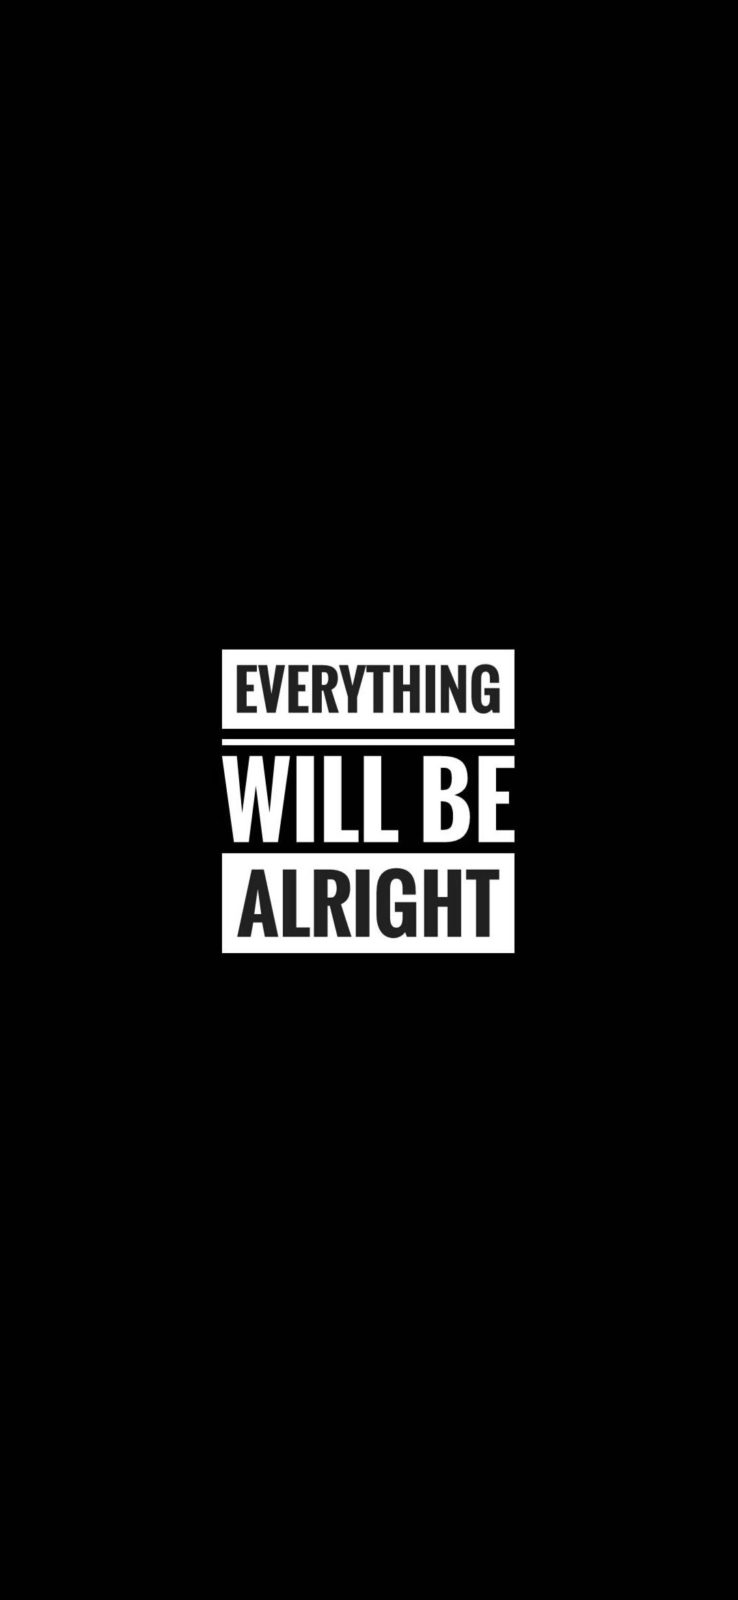 Everything Will Be Alright Motivational Wallpaper